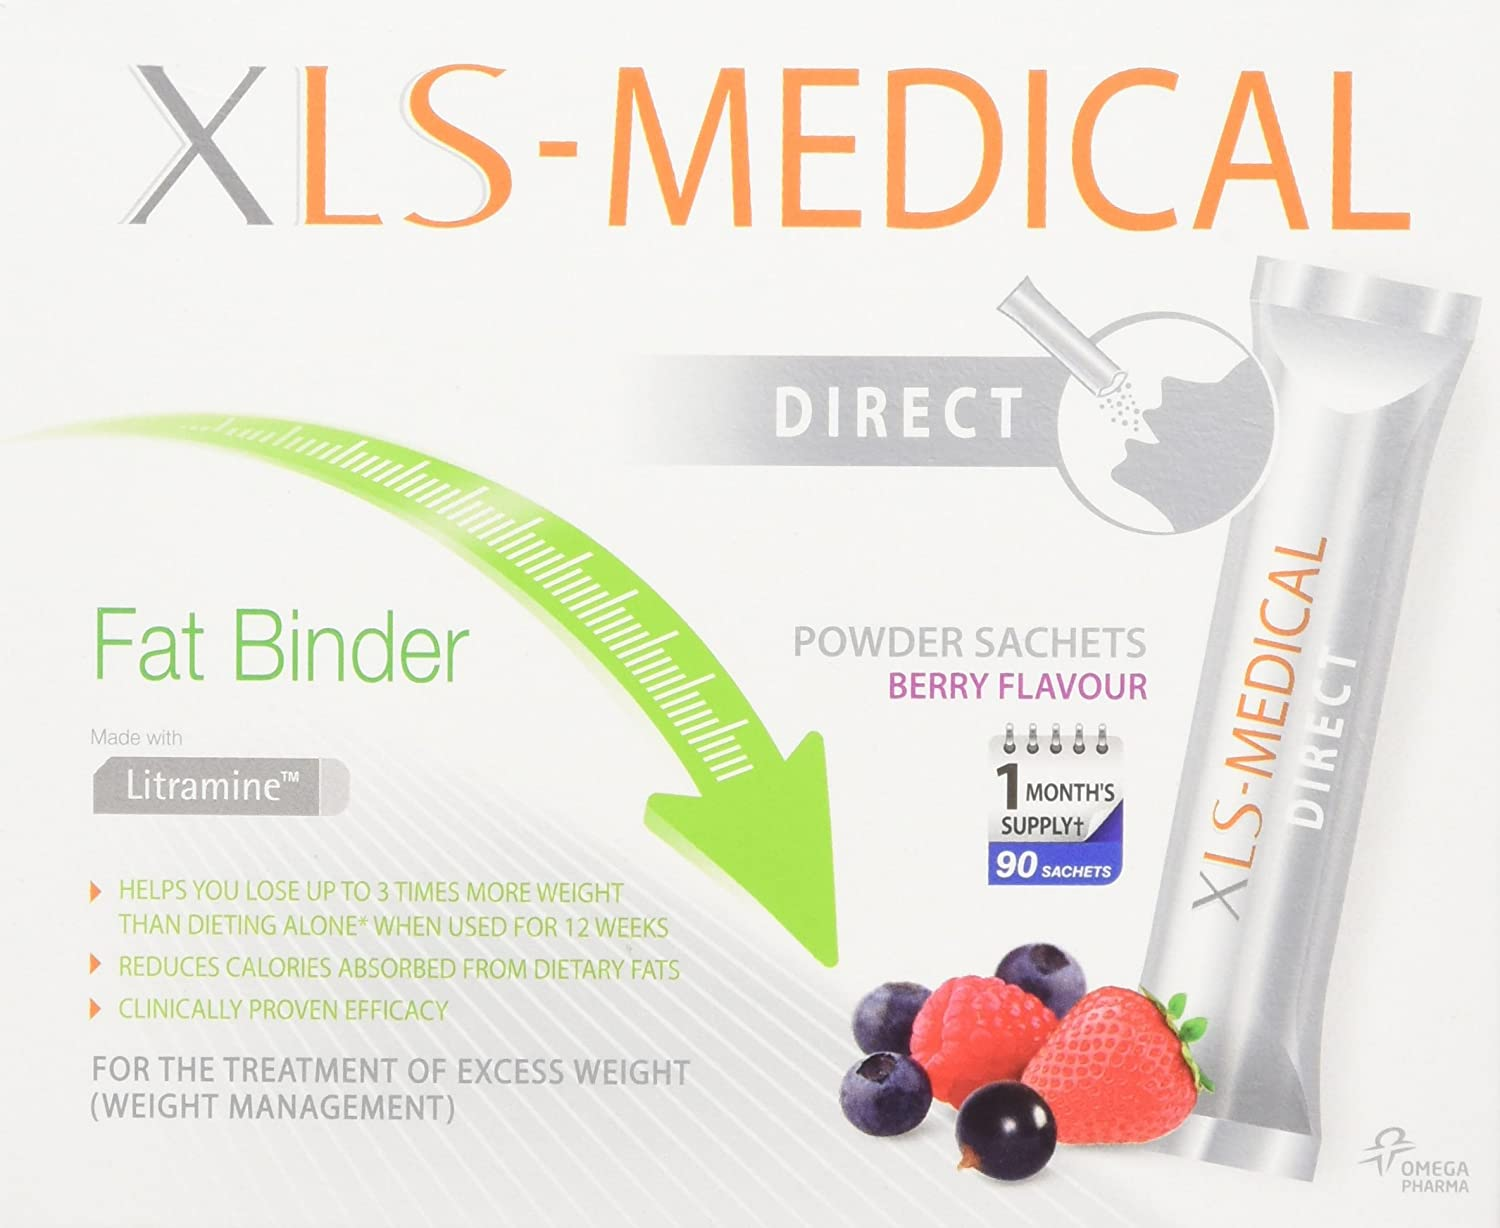 Xls Medical Berry Flavour Fat Binder Direct Weight Loss Aid 1 Month Supply Pack 90 Sachets